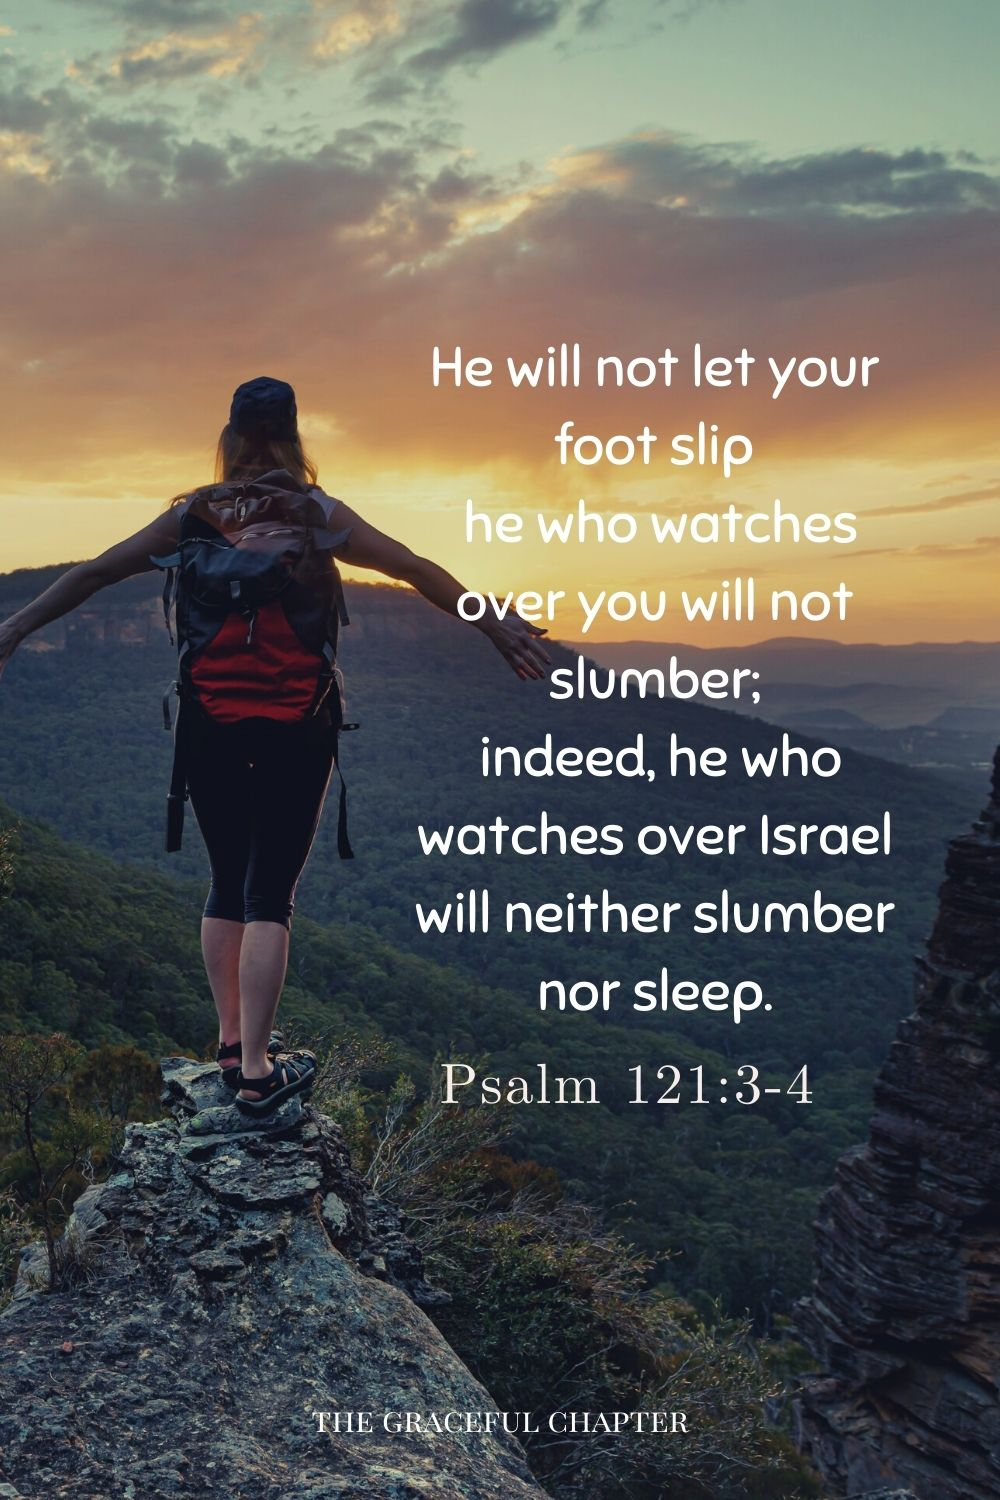 He will not let your foot slip he who watches over you will not slumber; indeed, he who watches over Israel will neither slumber nor sleep. Psalm121:3-4